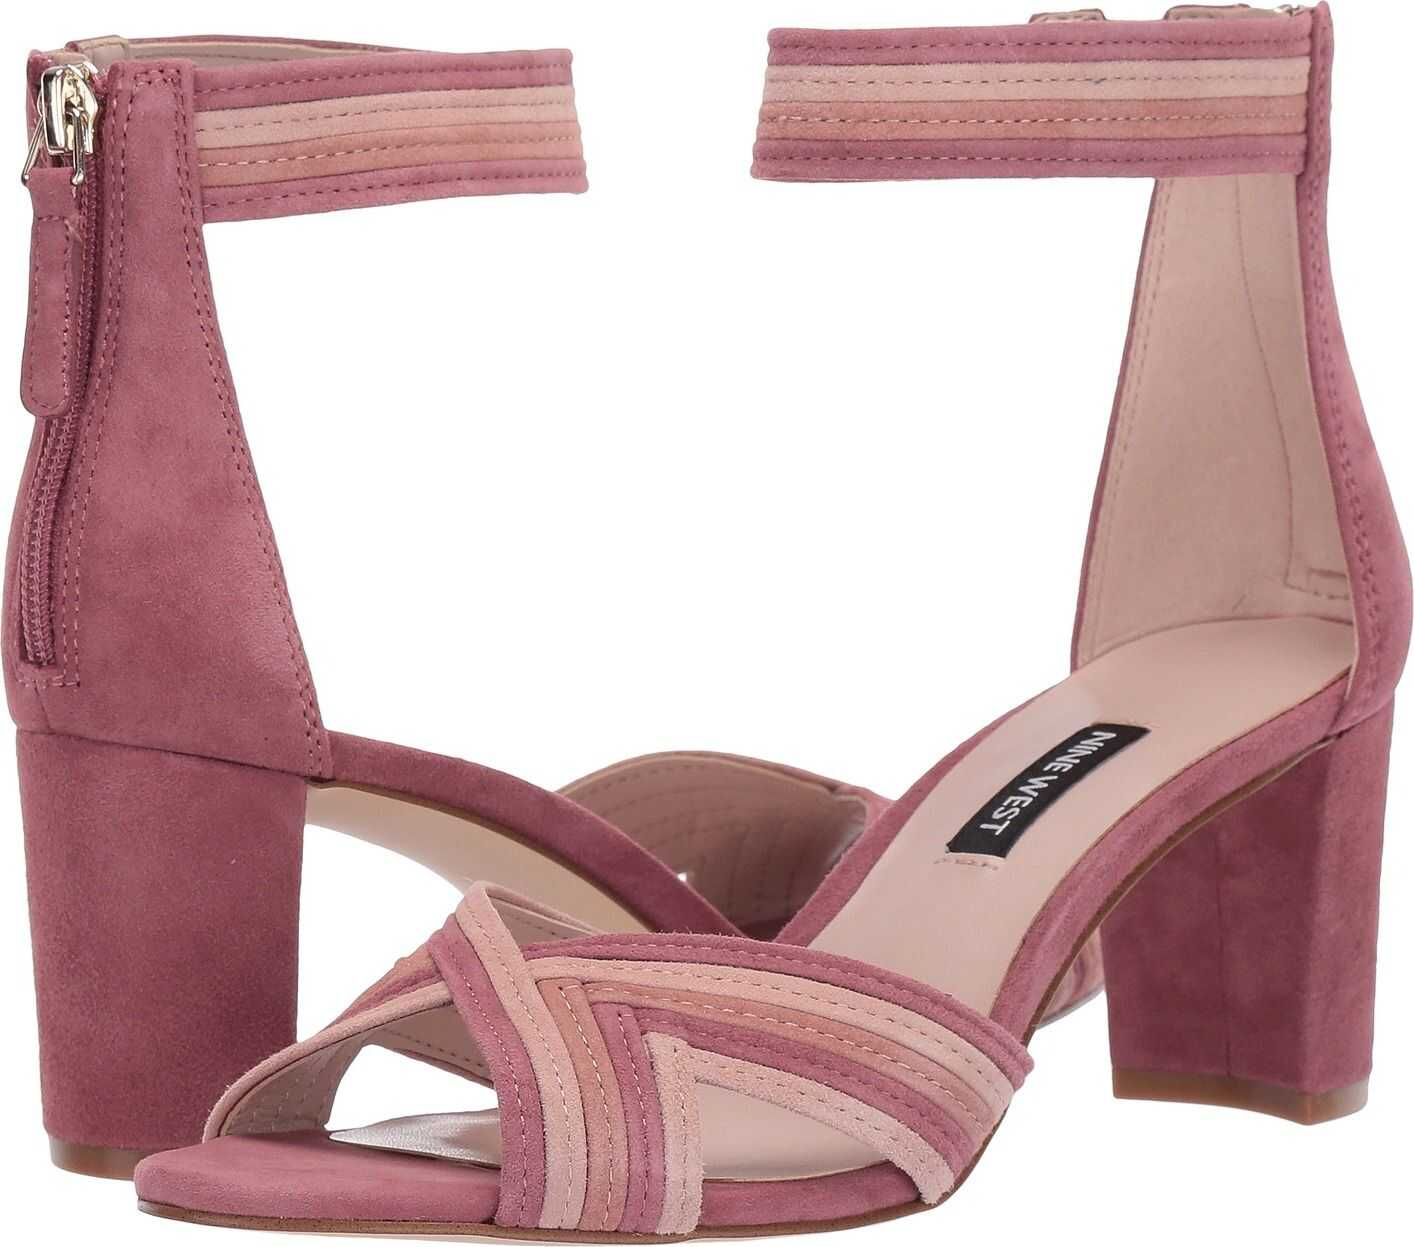 Nine West Pearl Heeled Sandal Peony/Modern Pink/Dusty Coral